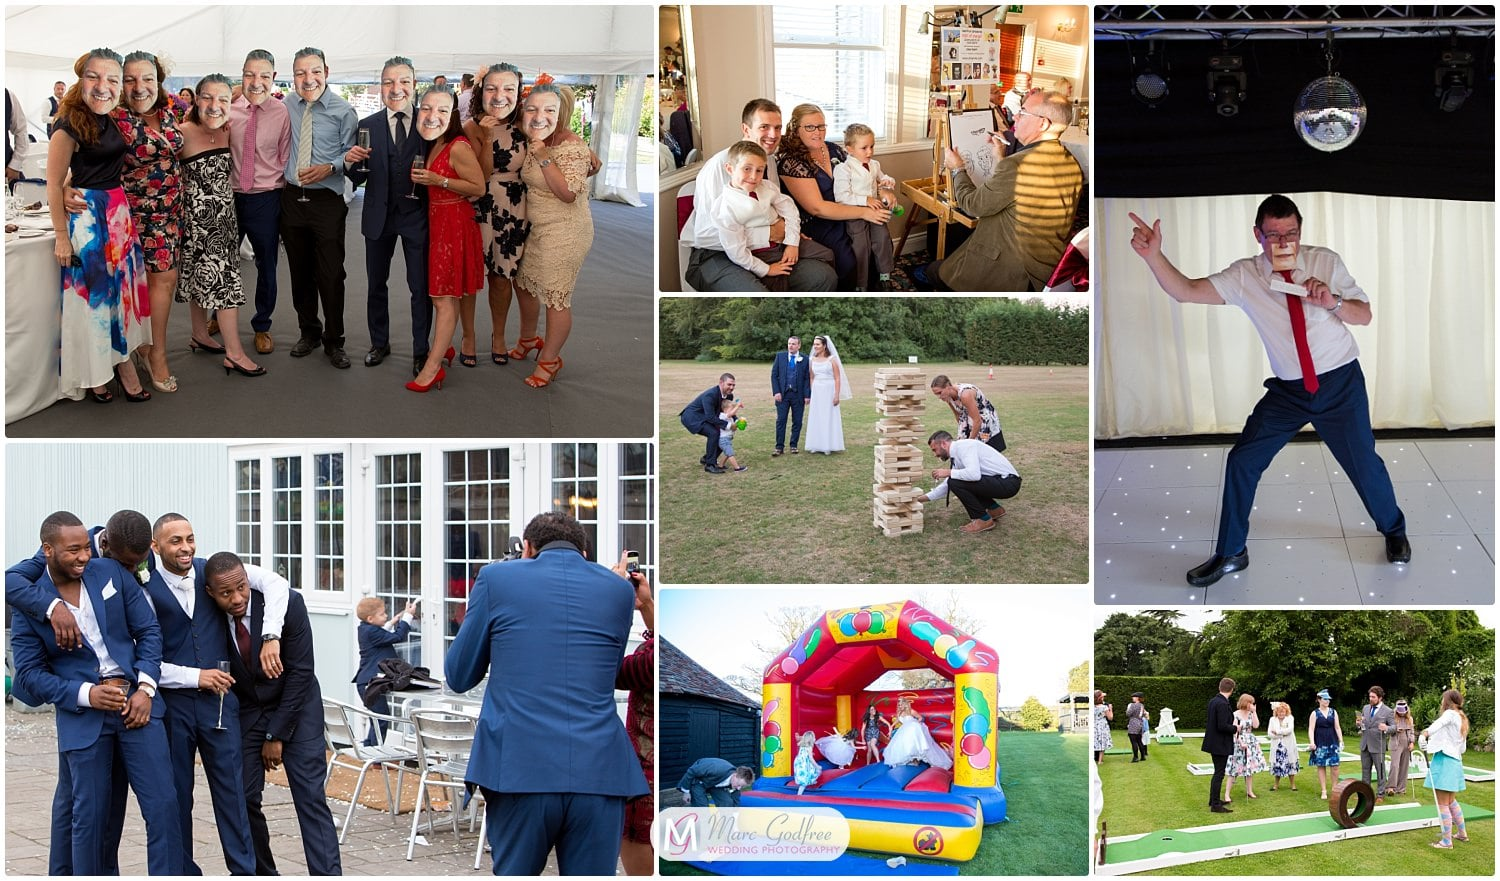 wedding photos you probably didn't consider-guests having fun